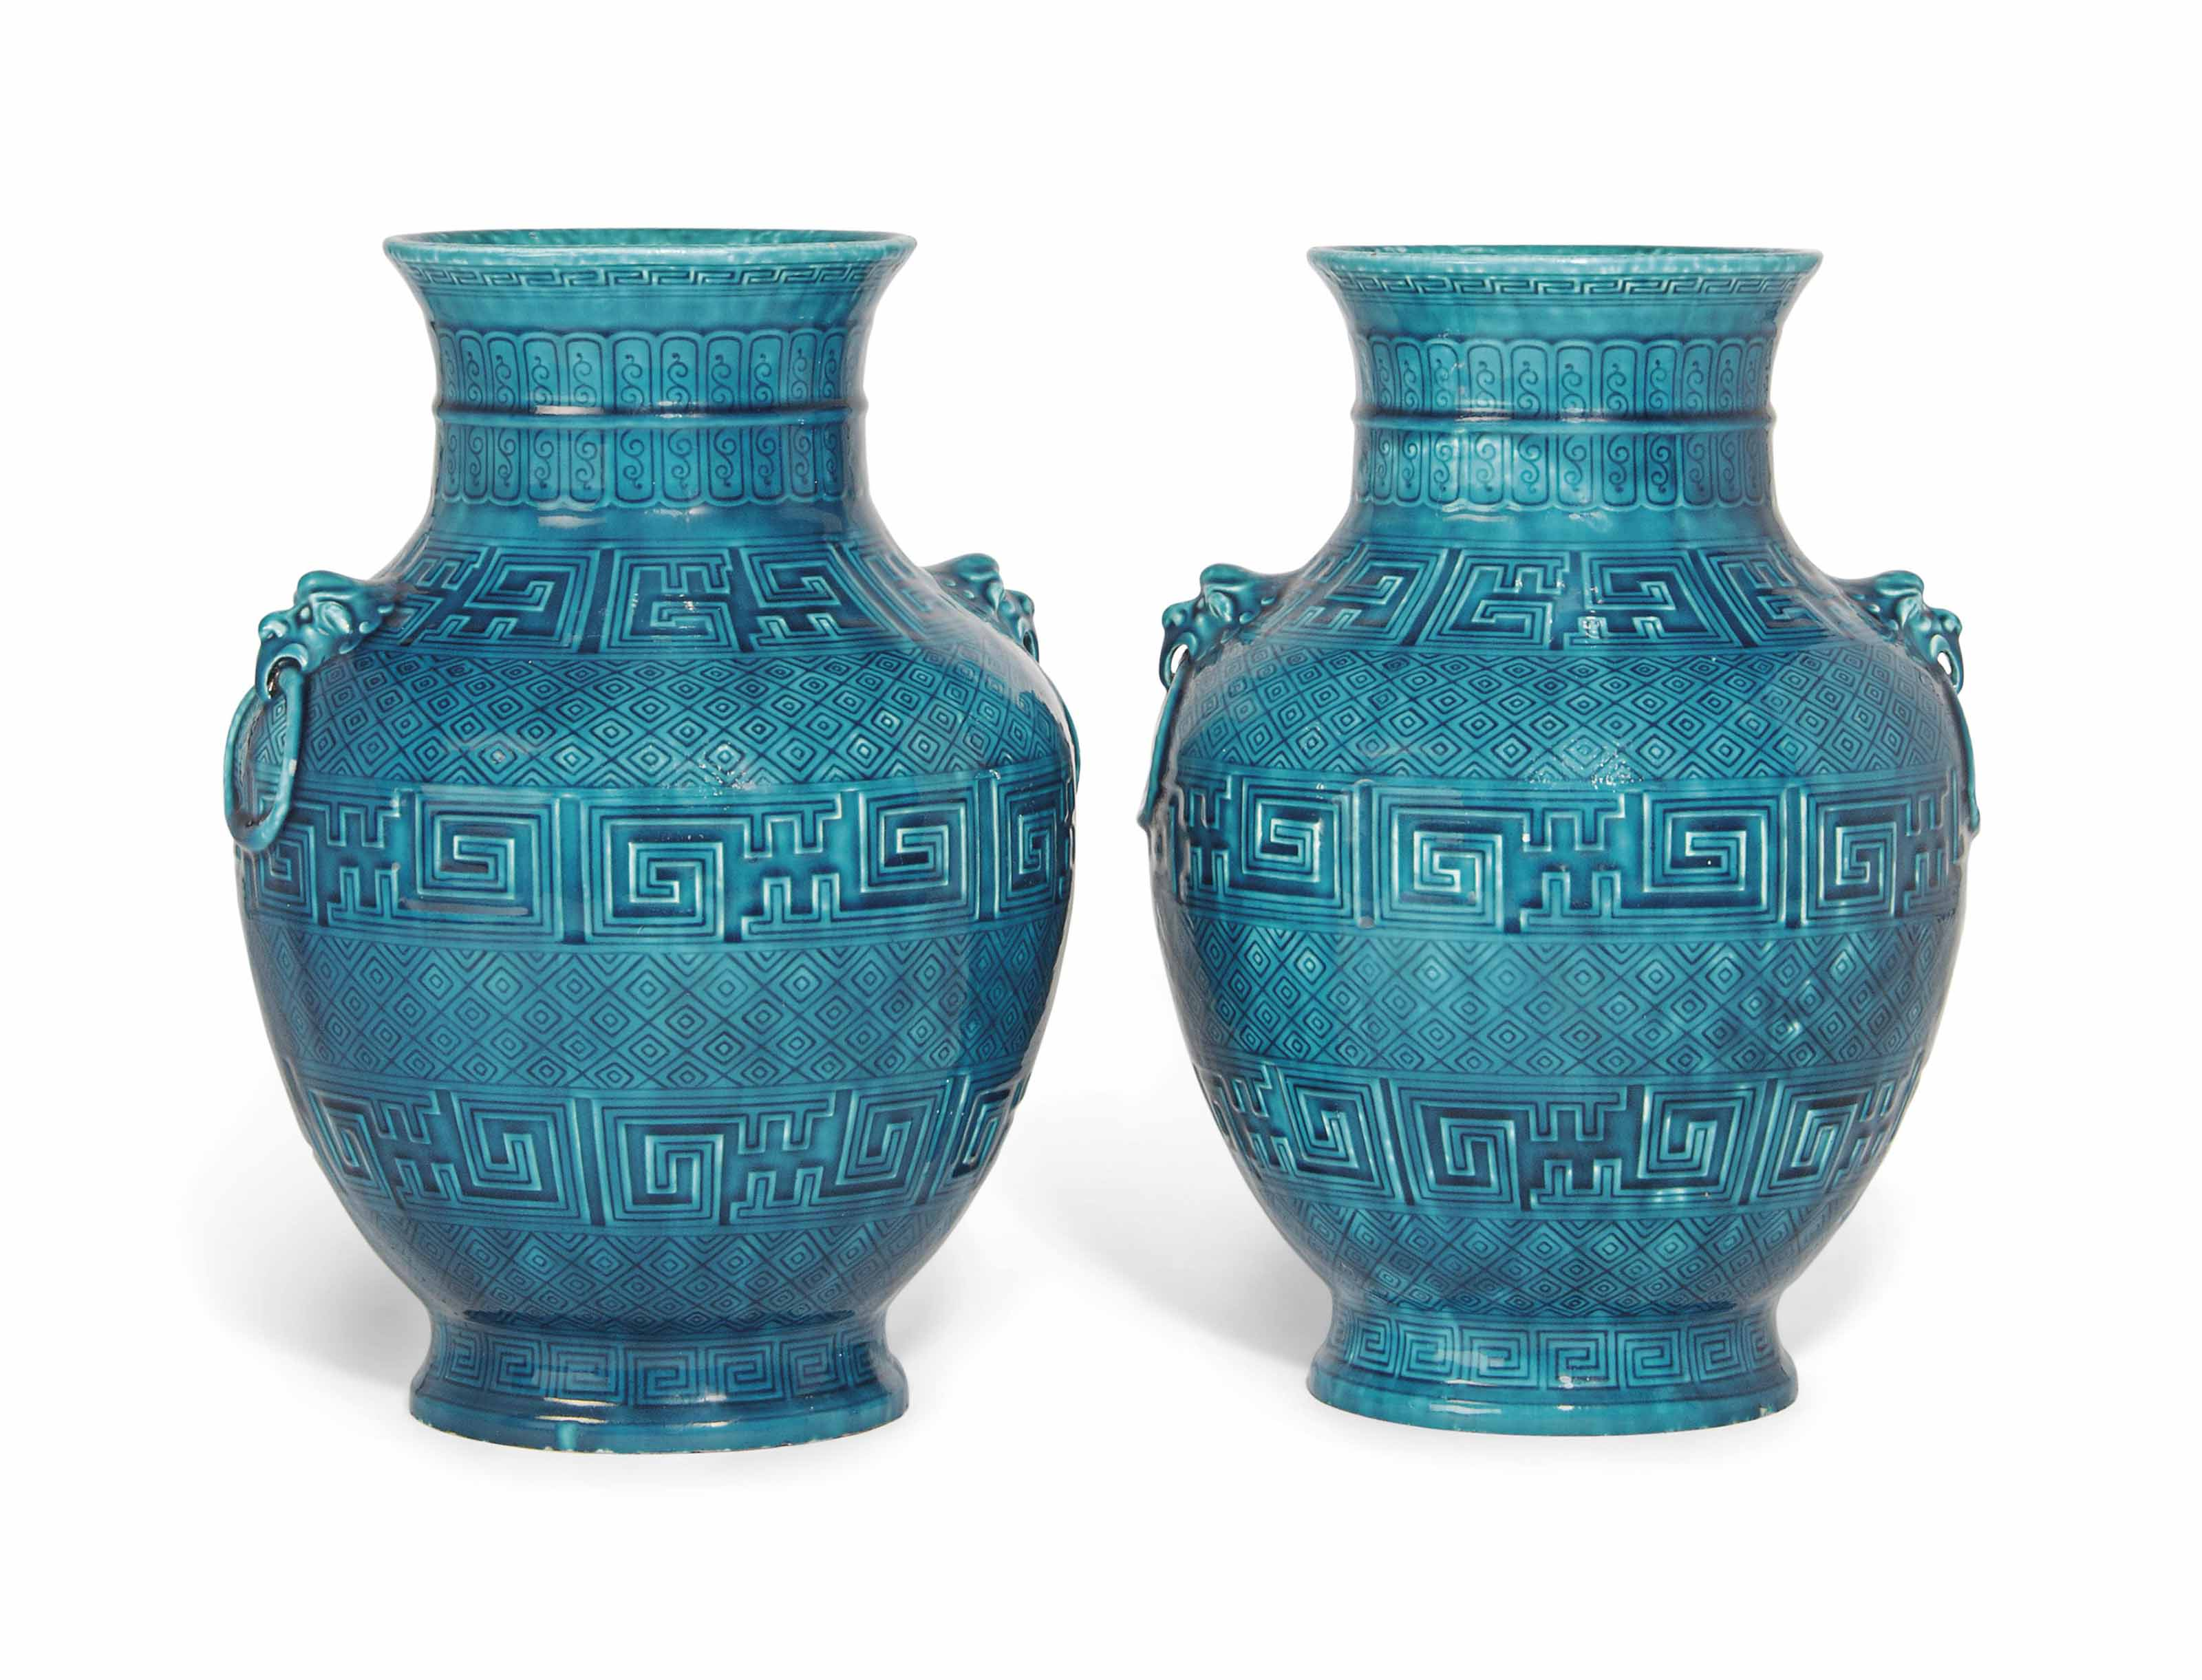 A PAIR OF THEODORE DECK TURQUOISE-GLAZED VASES